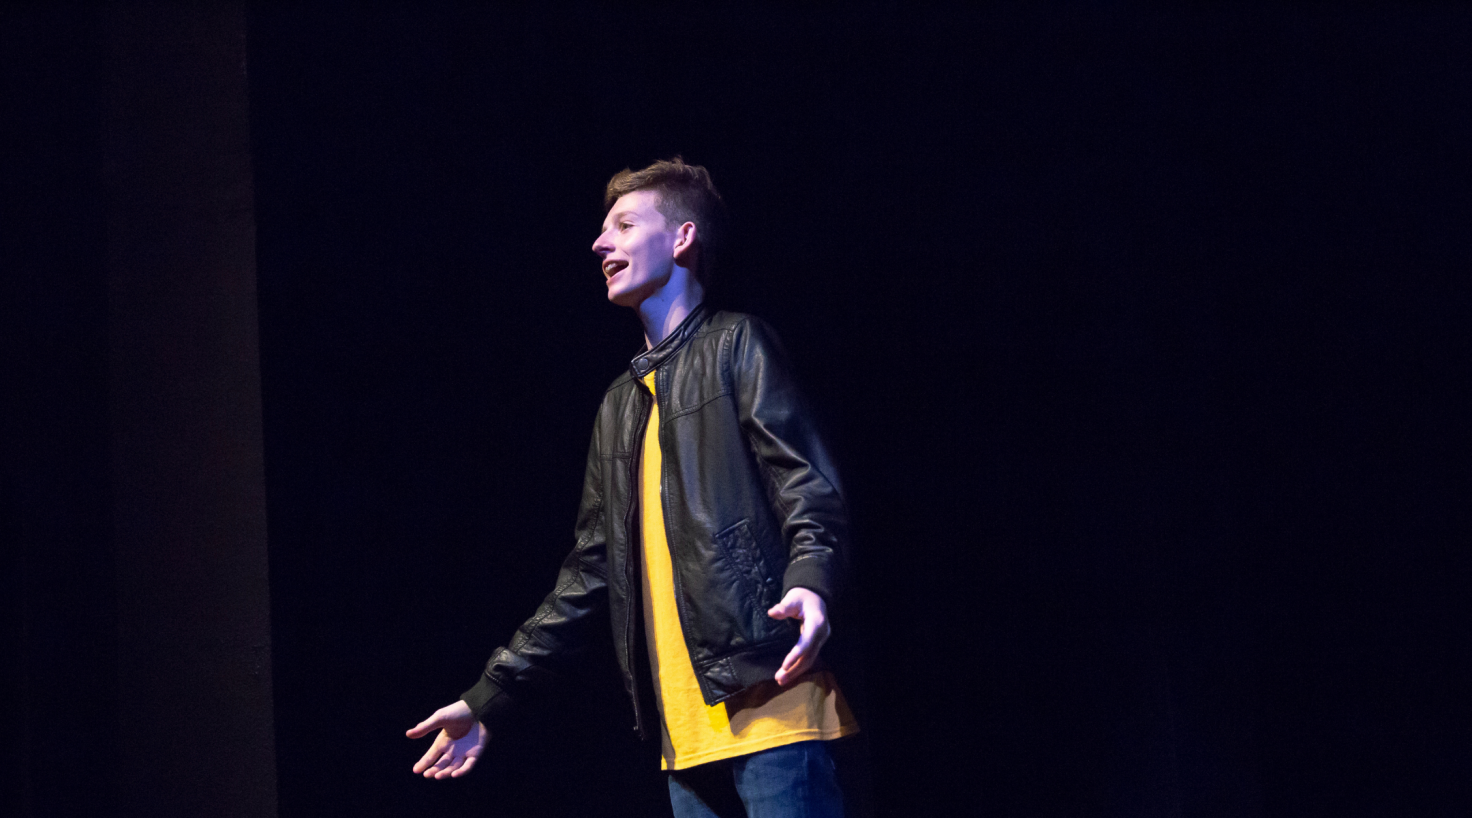 student wearing black leather jacked and yellow shirt singing on stage